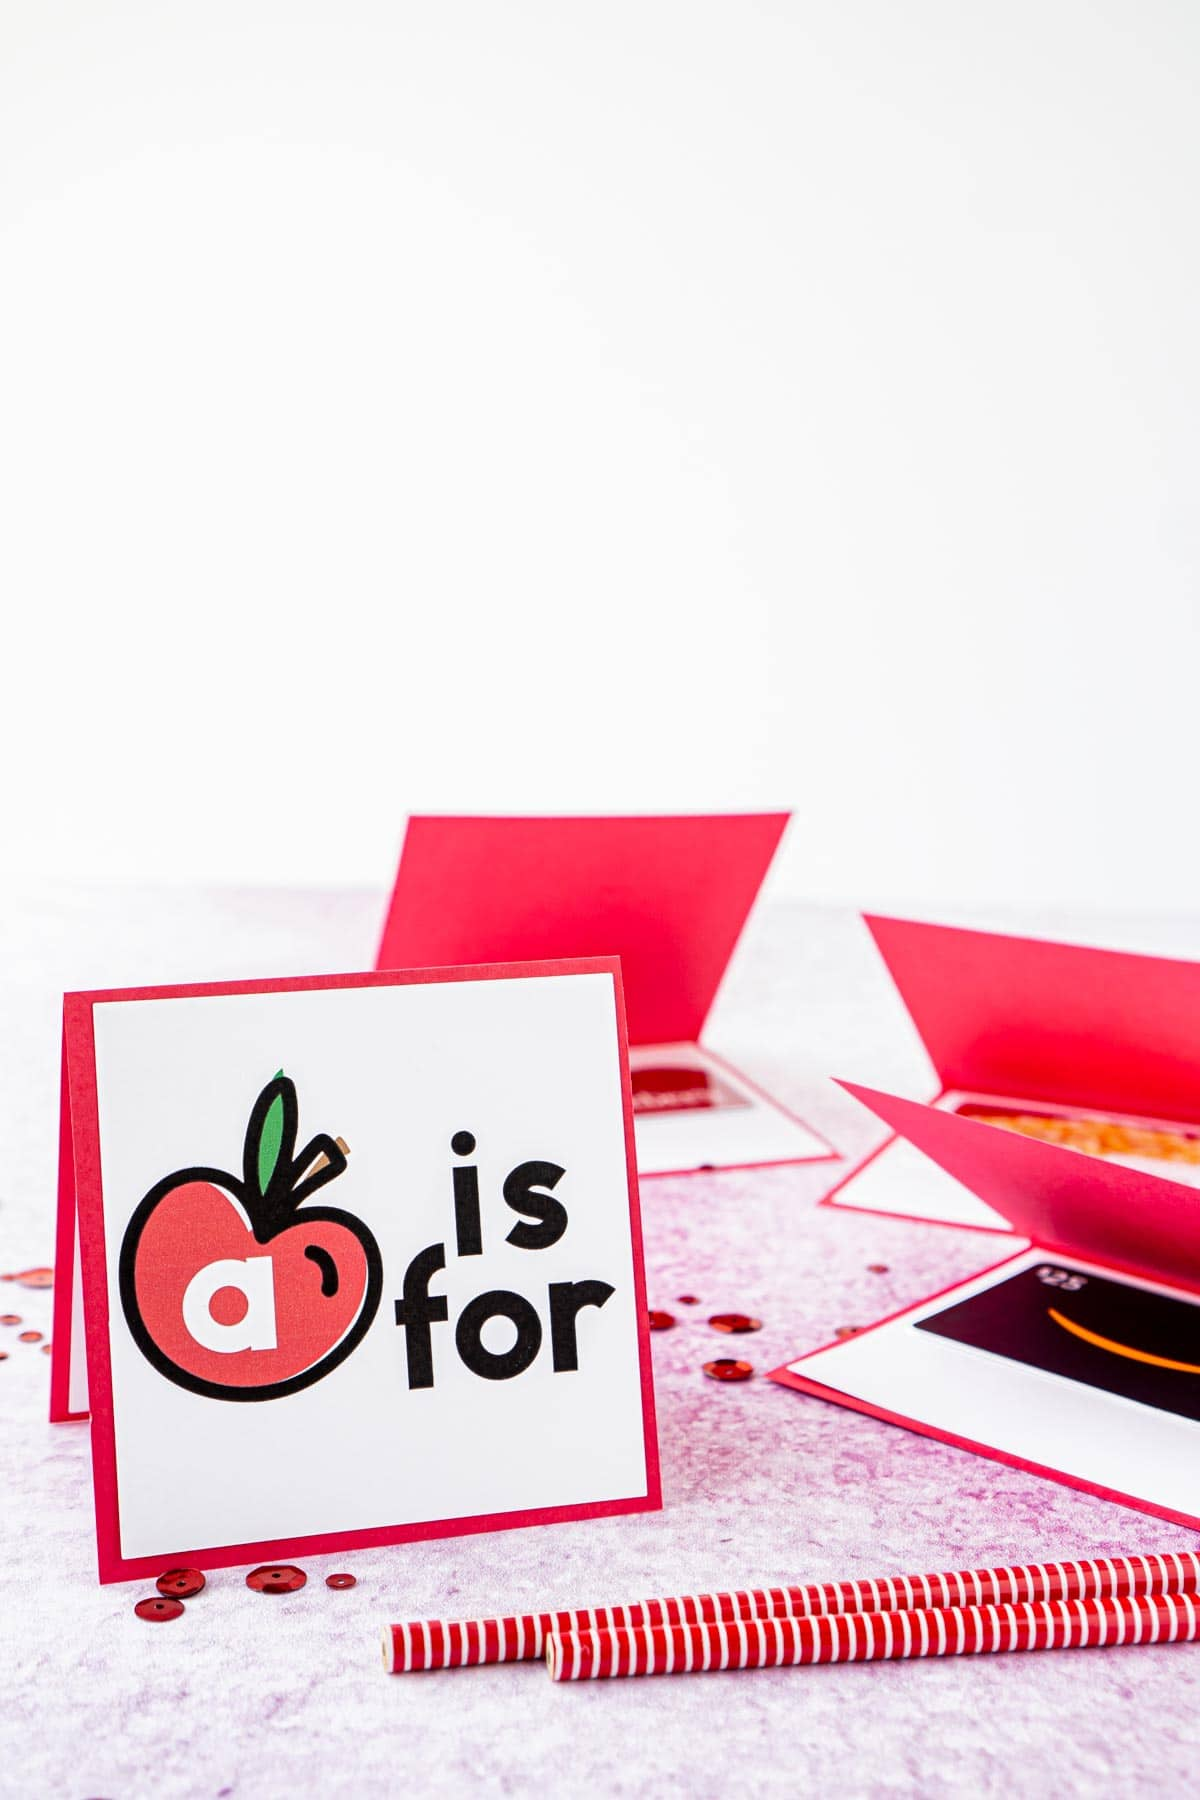 A is for apple card with others laying down and open